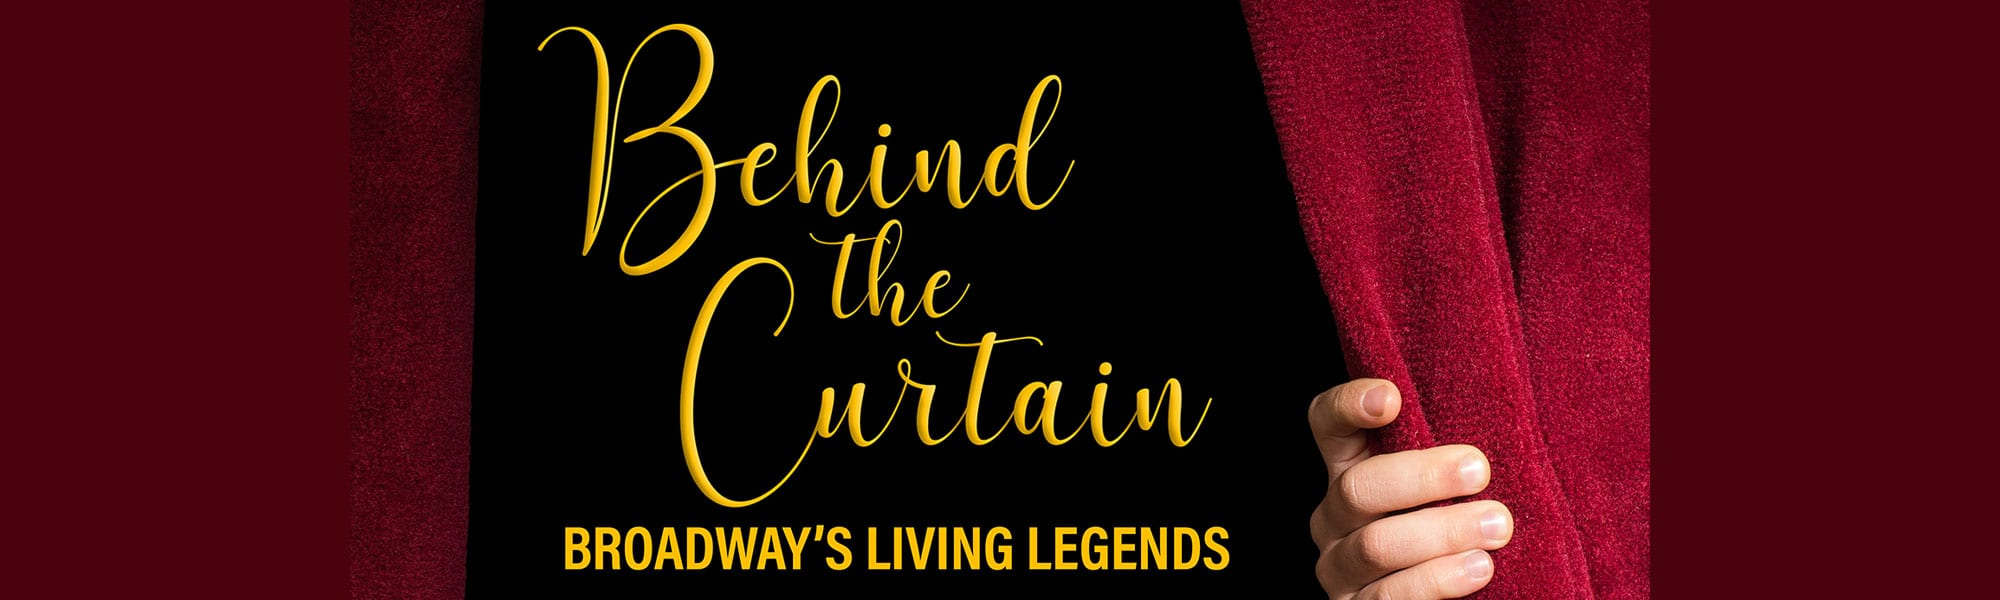 Behind the Curtain Broadway's Living Legends Podcast